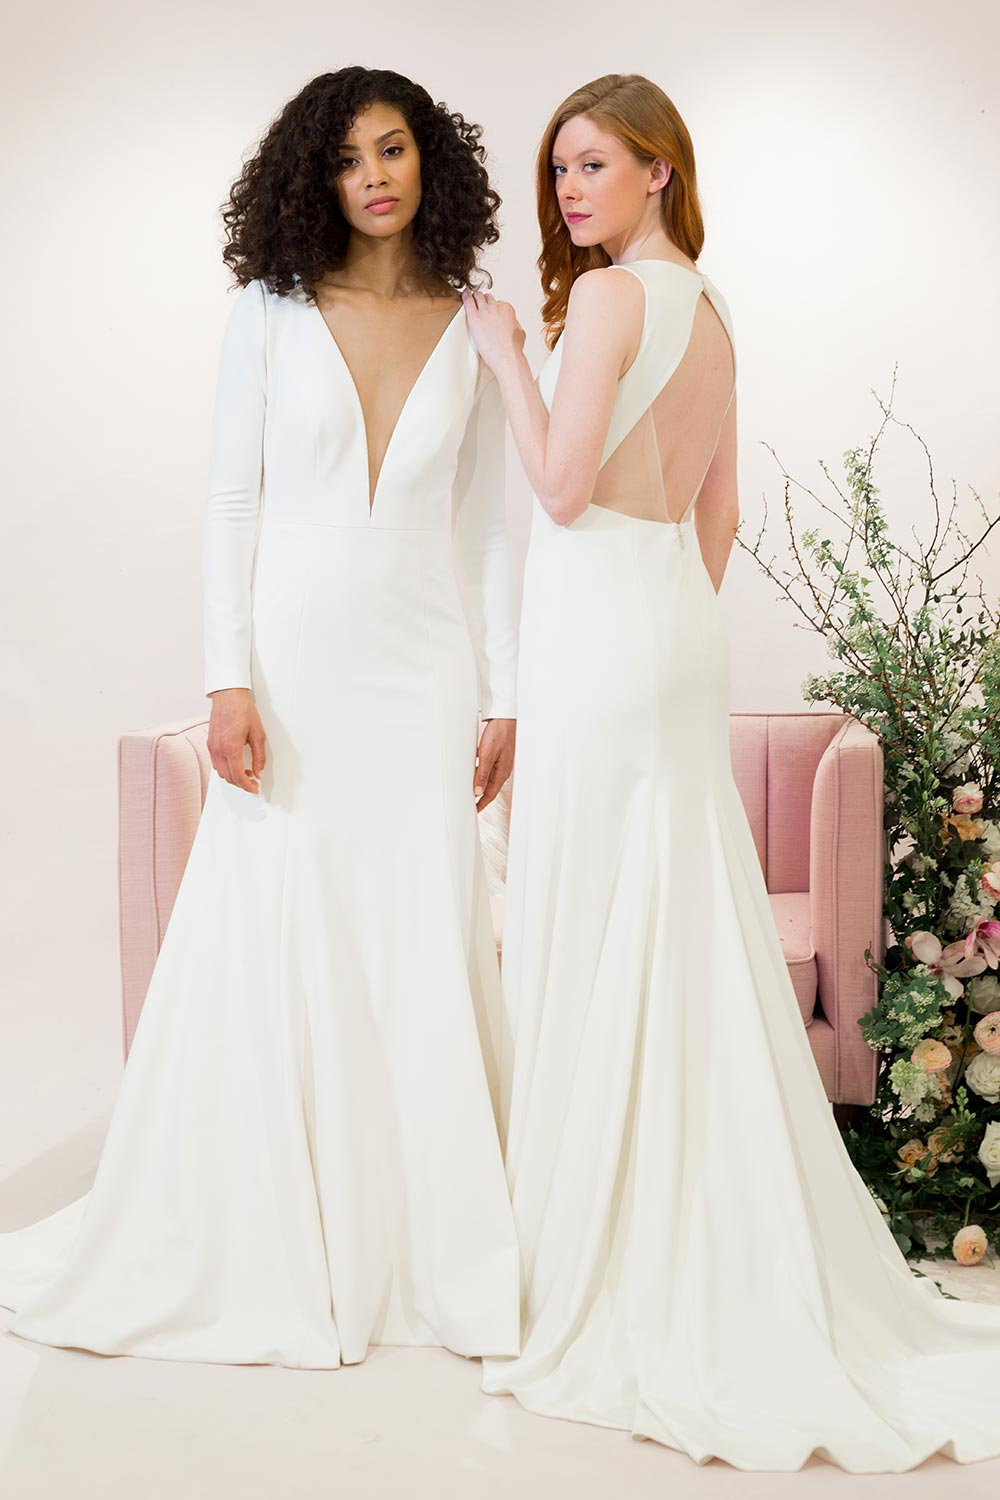 plunging v-neck long sleeve wedding dress and sleek backless wedding dress